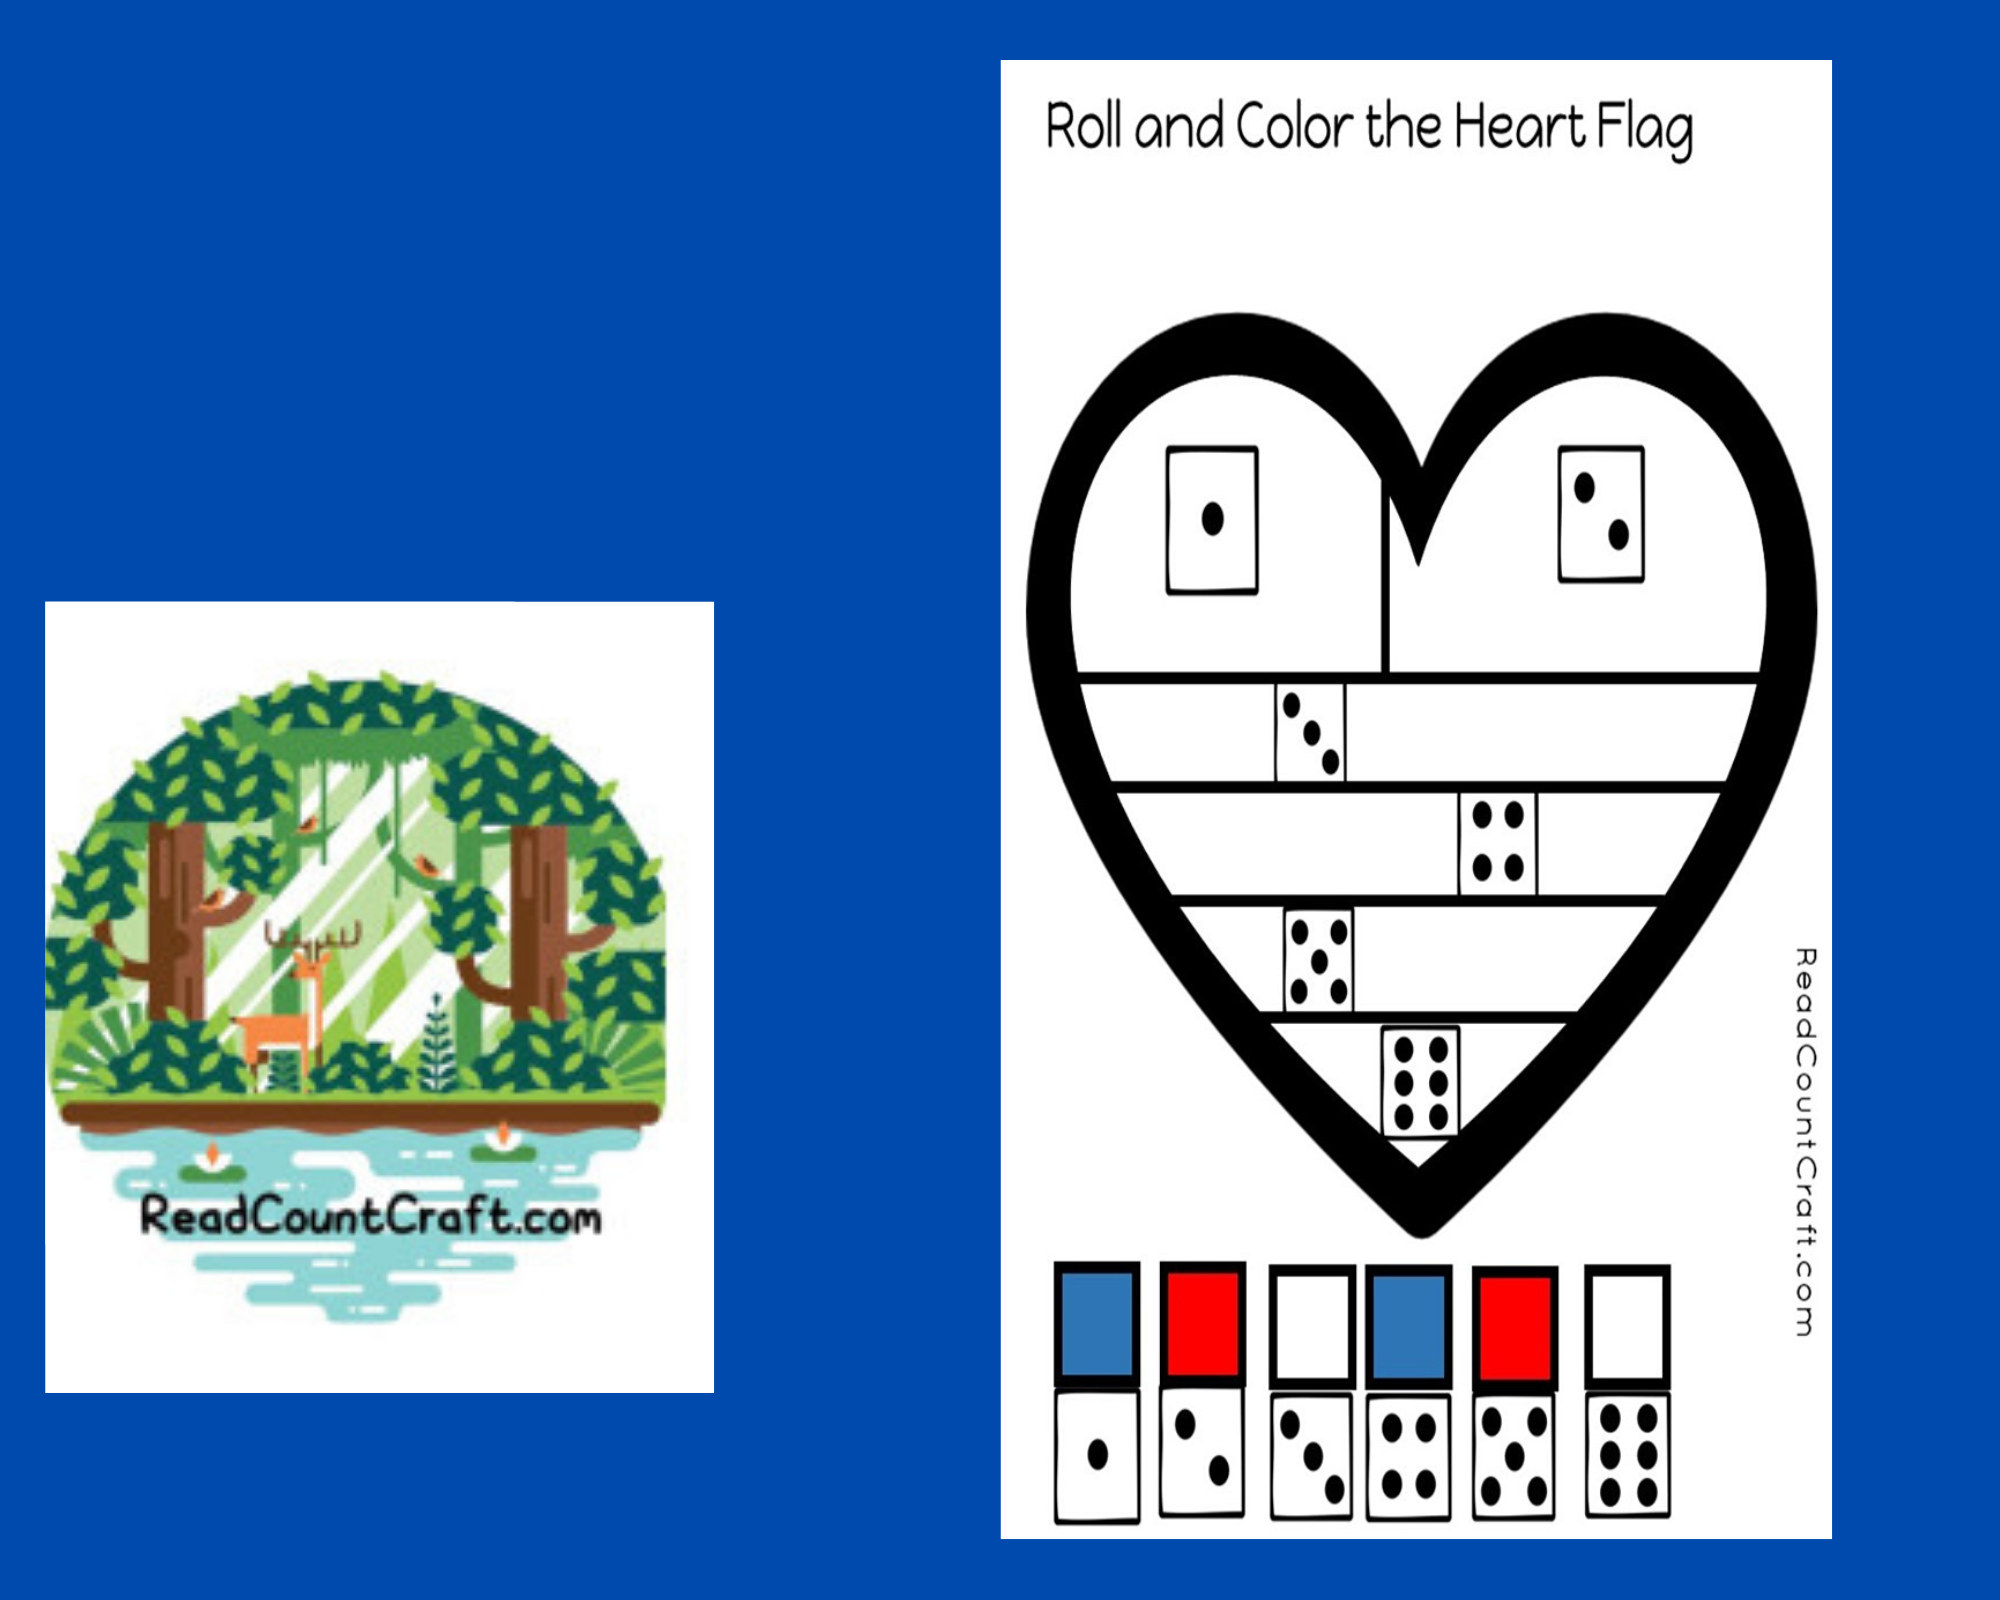 preschool math dice game roll and color a heart flag